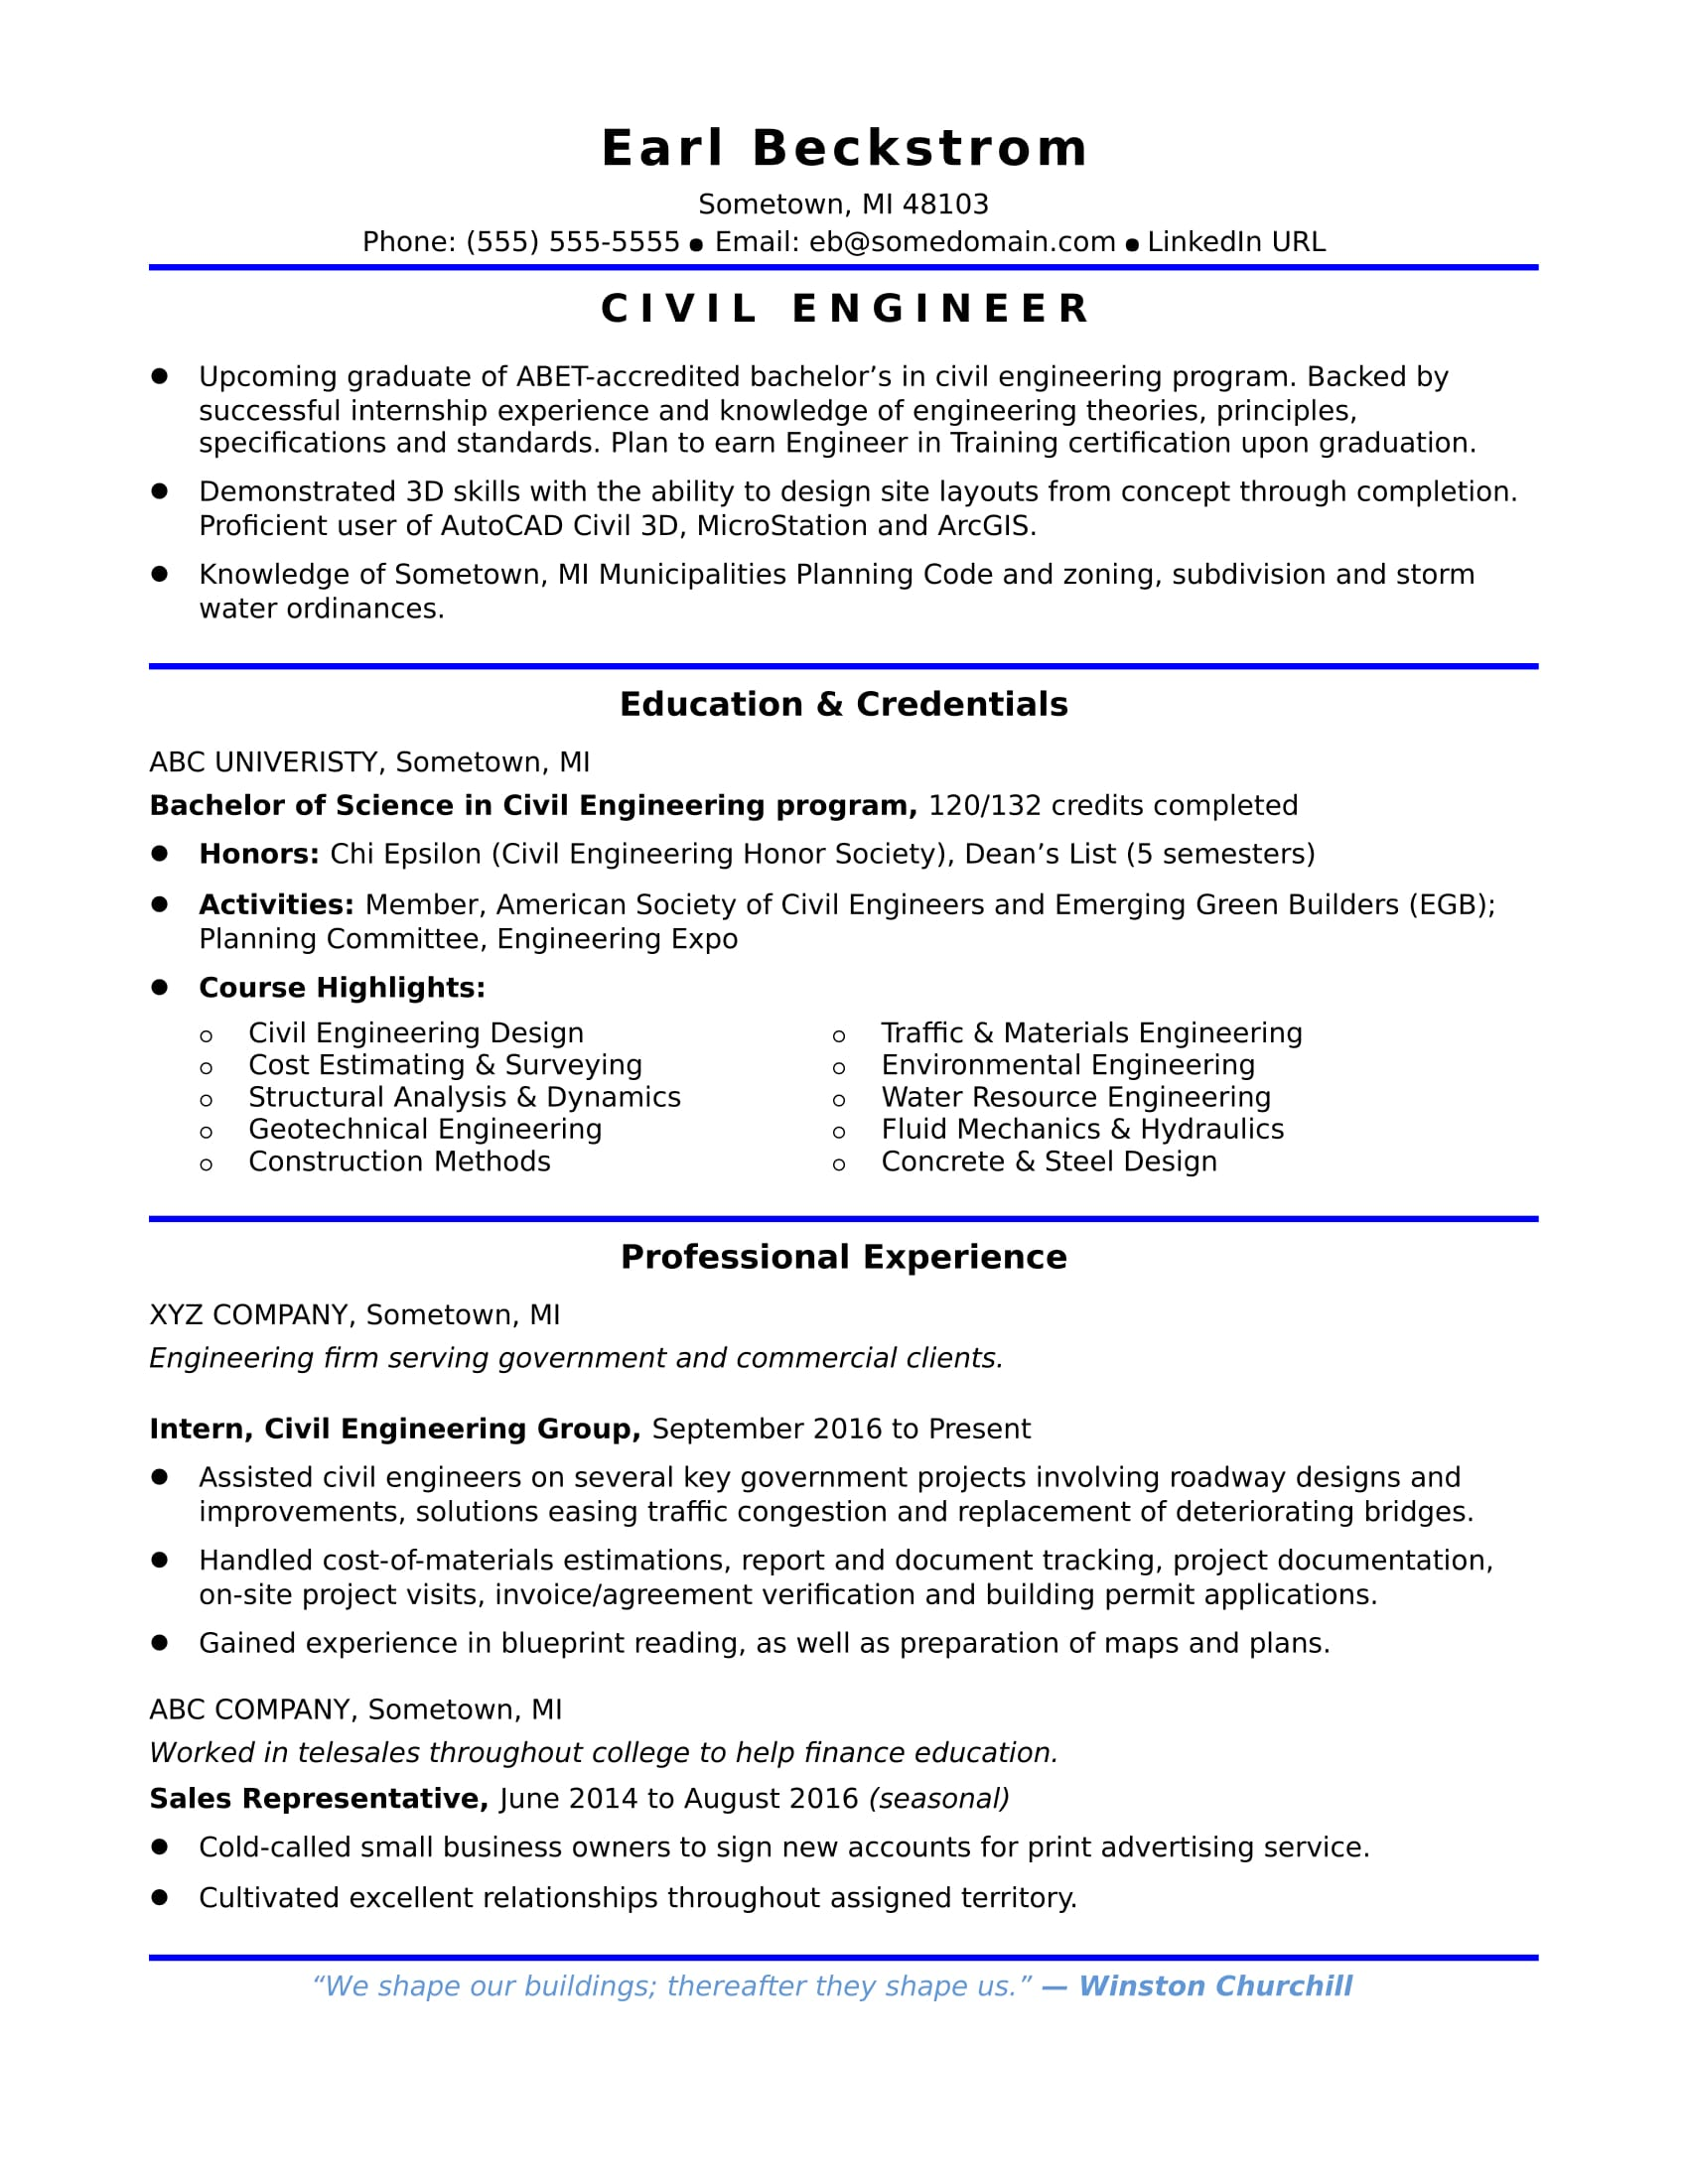 resume preparation samples